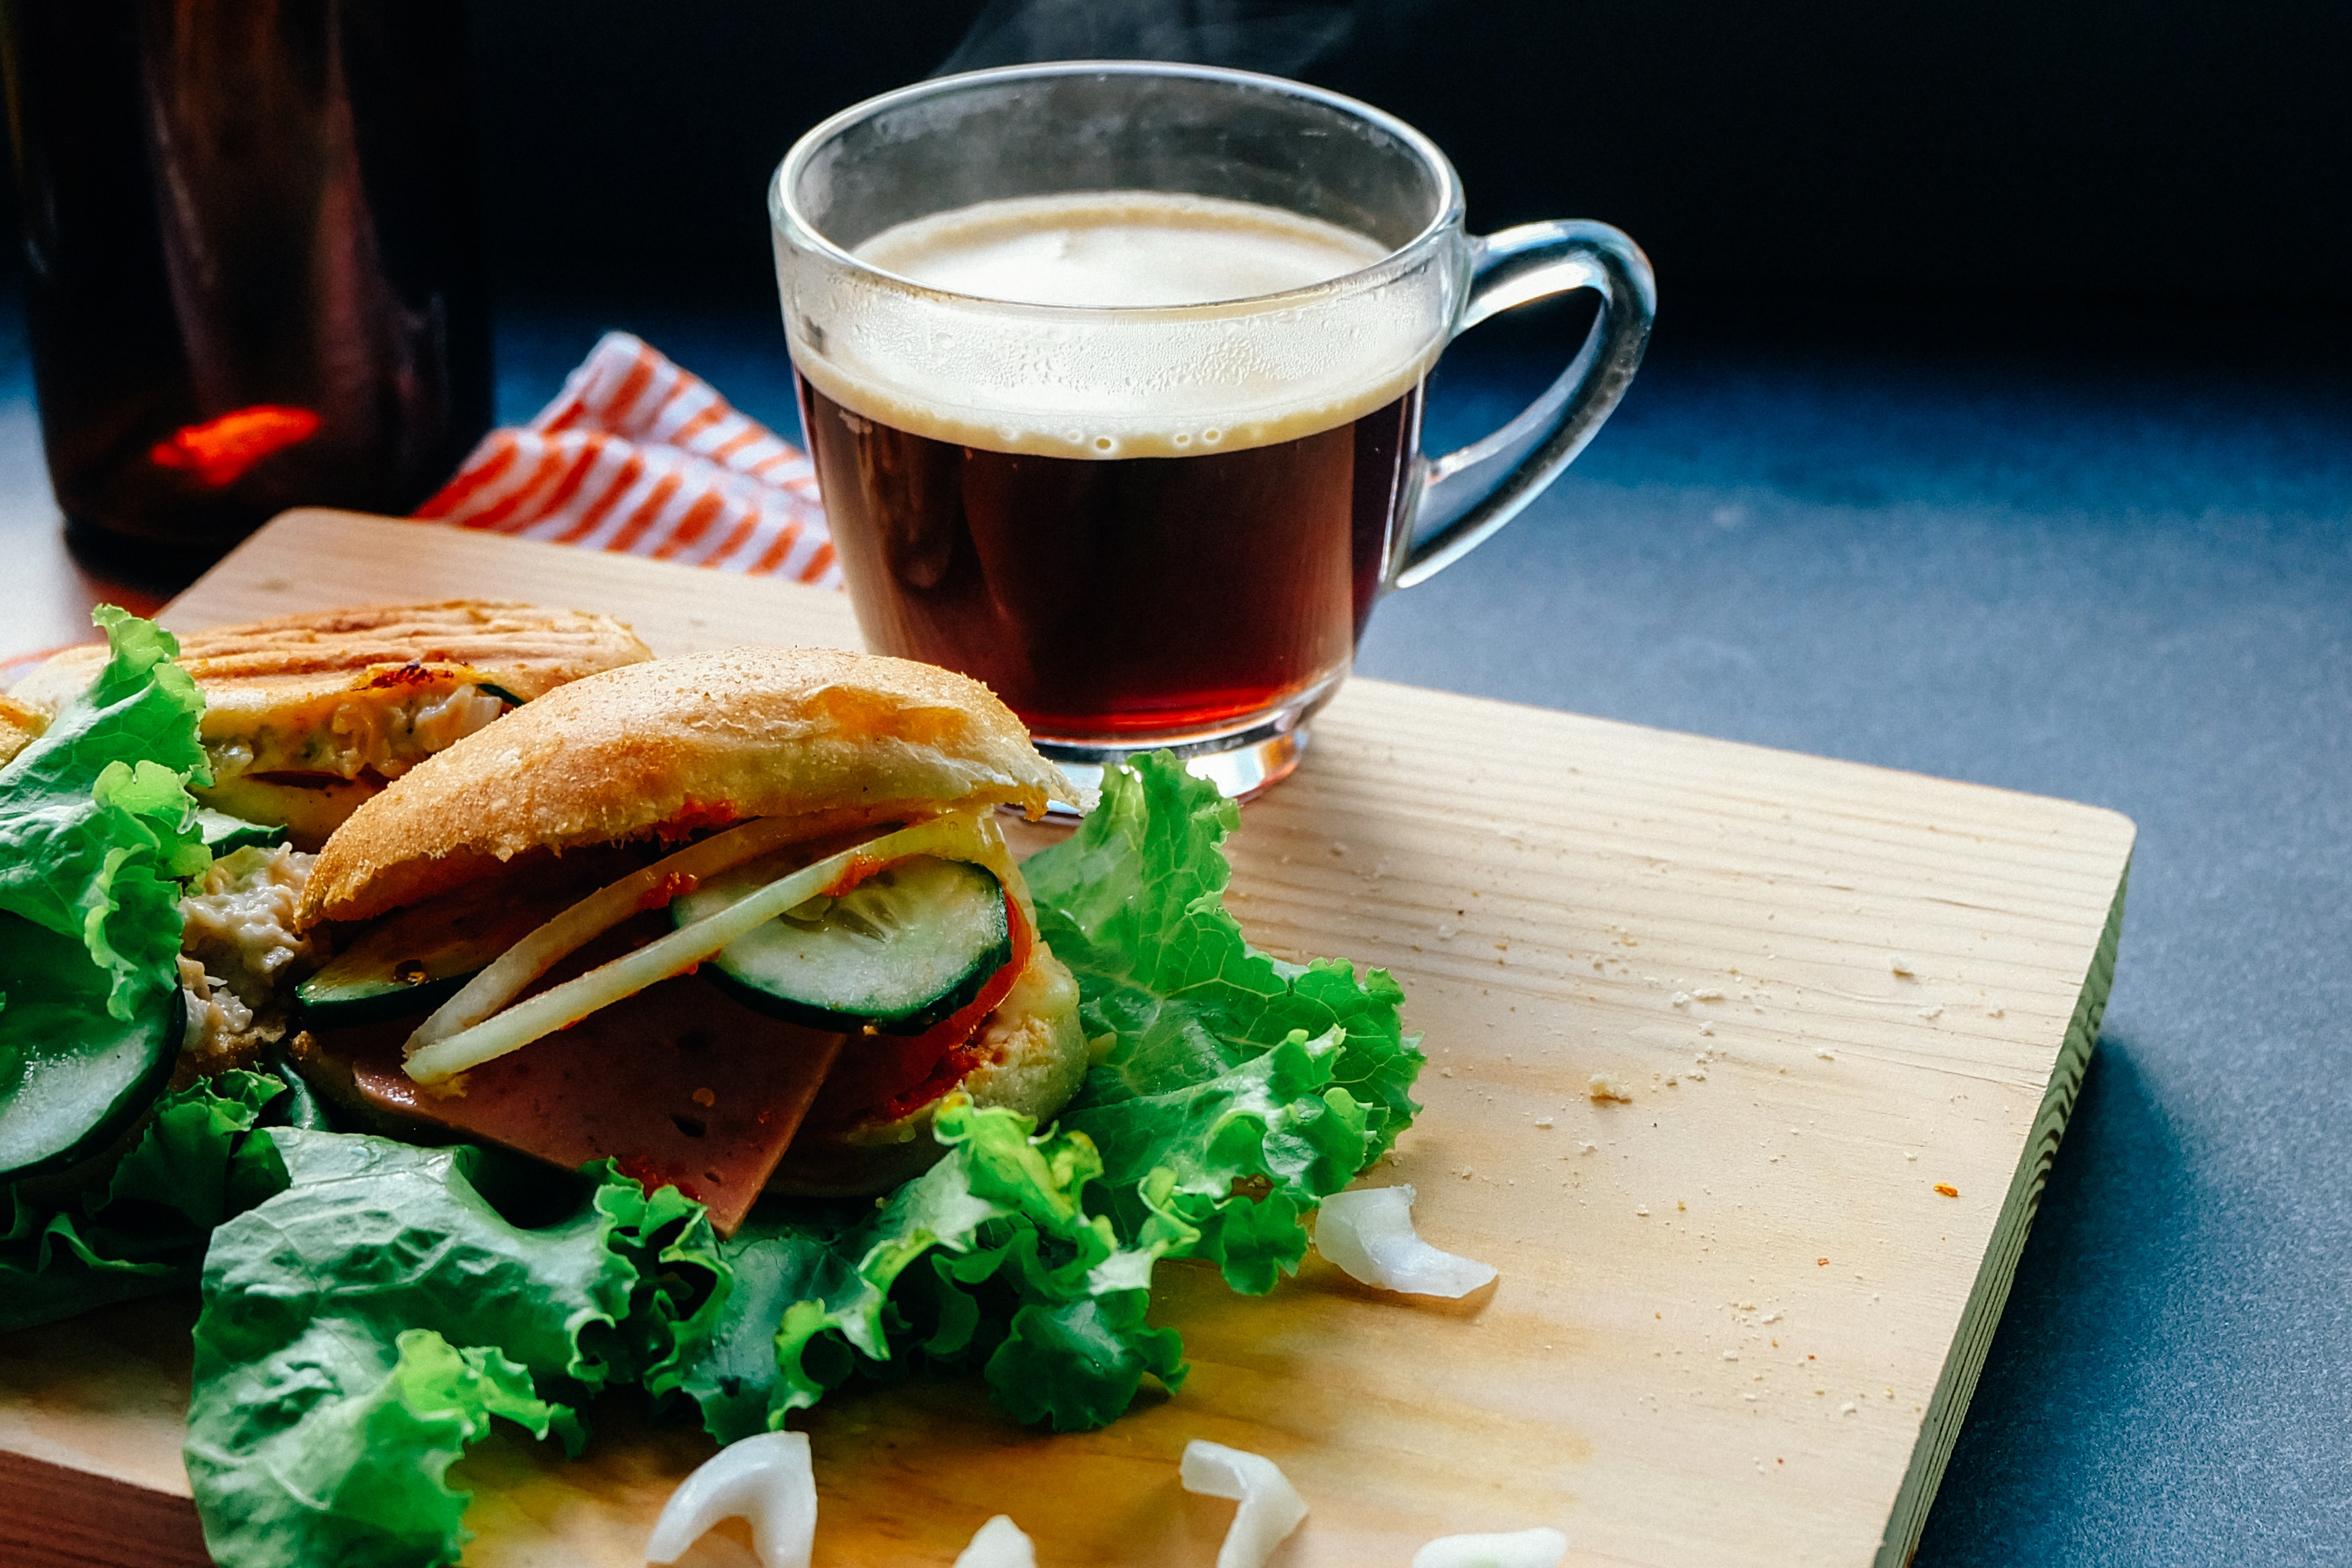 Sandwich with coffee